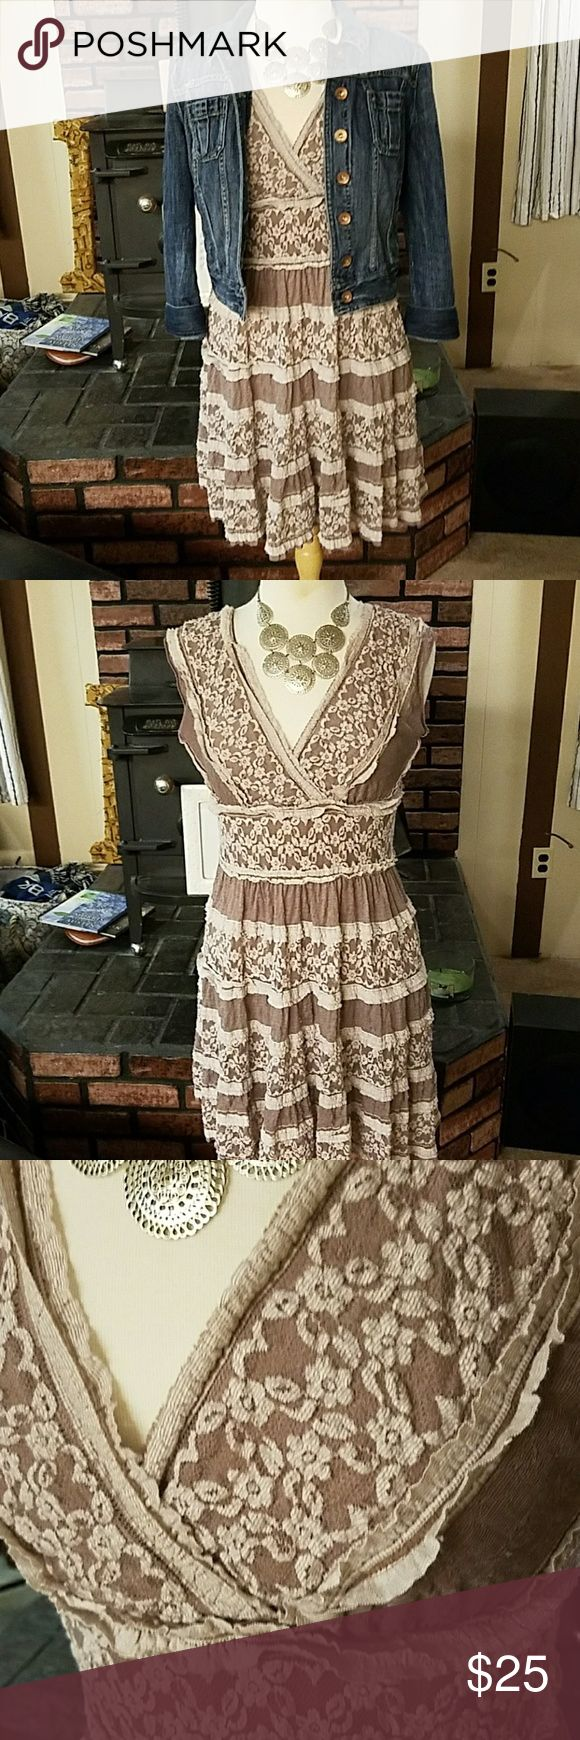 "Stretchy lace dress ""You know me, give me a hint of saloon girl and I'm sold."" Great dress for the summer.  Easy and fun to wear.  Very versatile for styling.   37 inches long.   Good used condition. Max Studio Dresses"